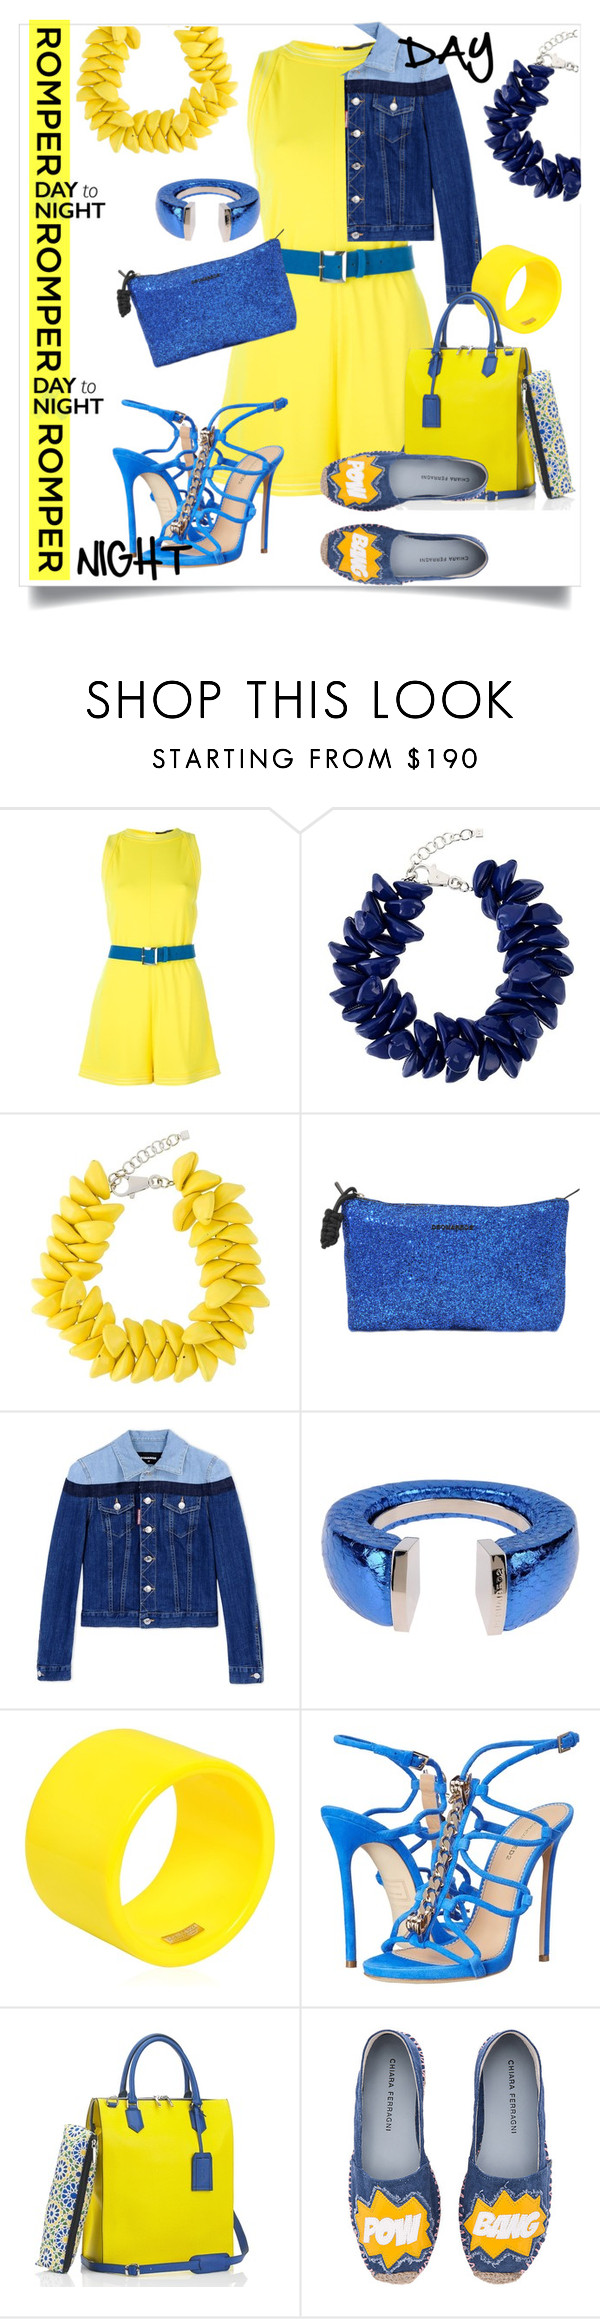 """""""Day to Night Romper"""" by captainsilly ❤ liked on Polyvore featuring Dsquared2, Mark/Giusti and Chiara Ferragni"""